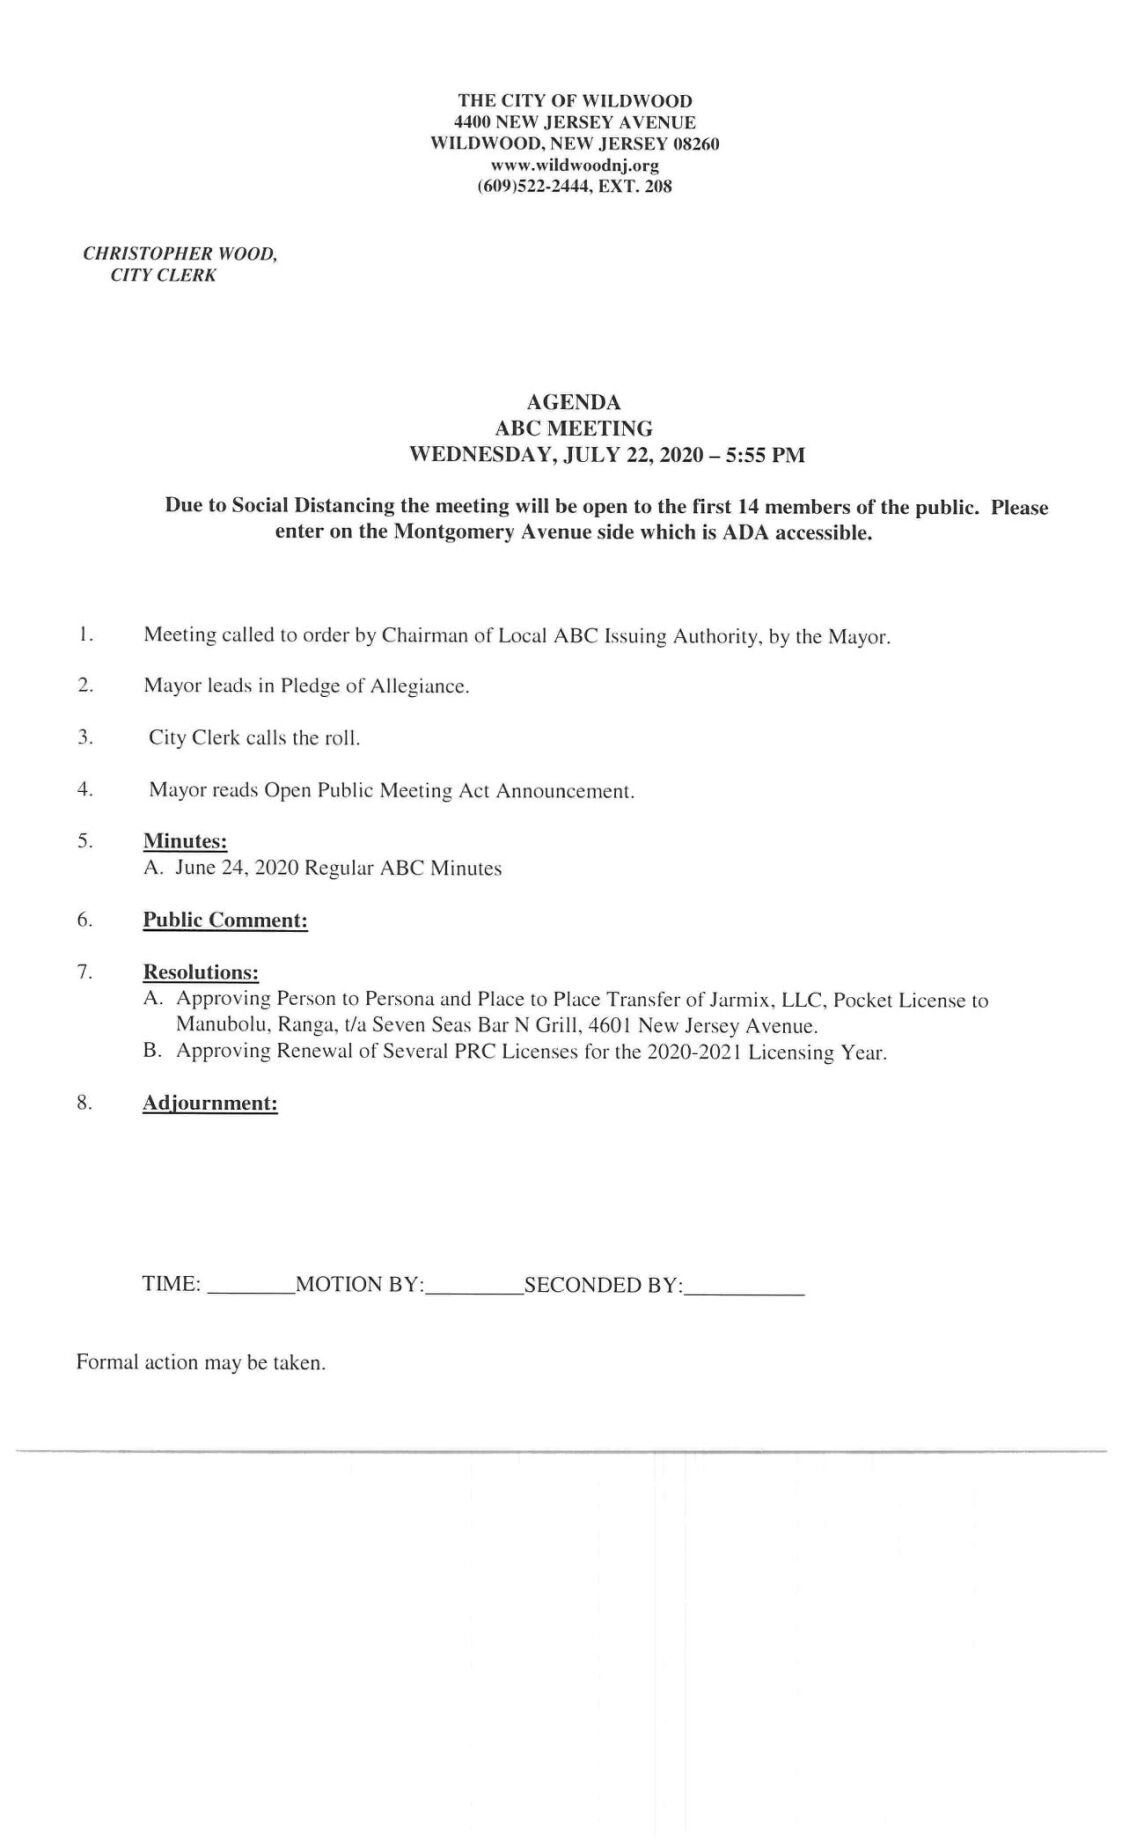 Wildwood City Commissioners Meeting Agenda July 22, 2020